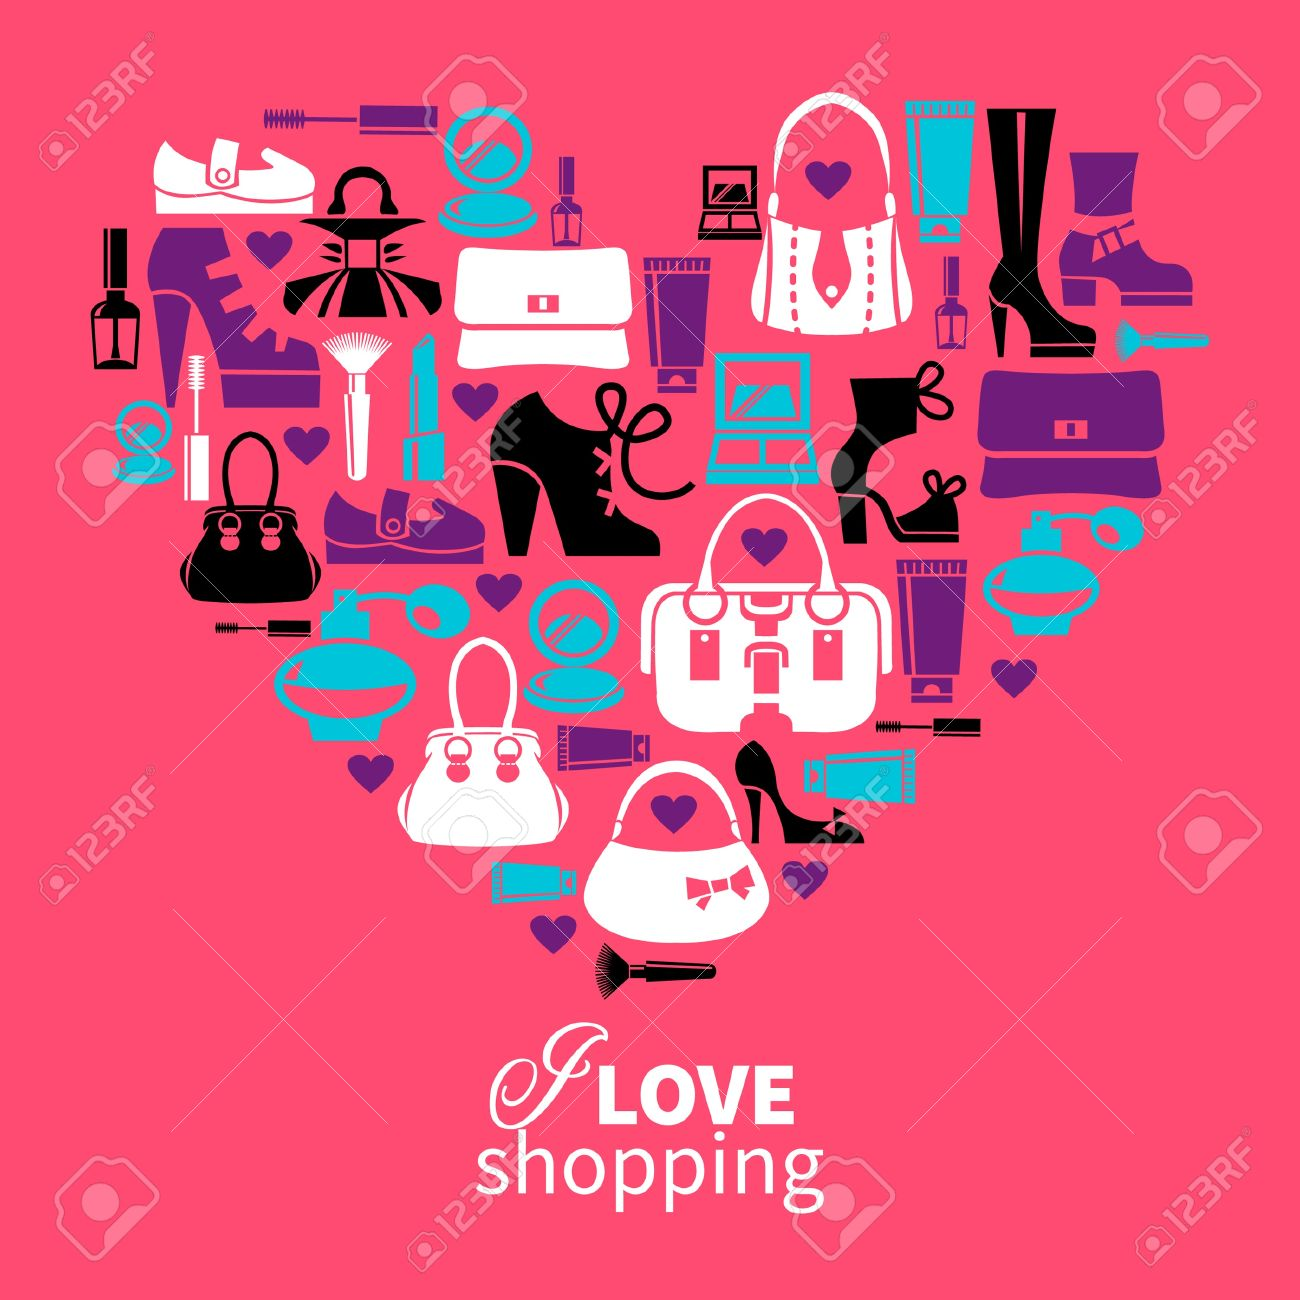 d2a23b1a5c0e Shopping love - heart with set of vector fashion women's icons Stock Vector  - 19351981